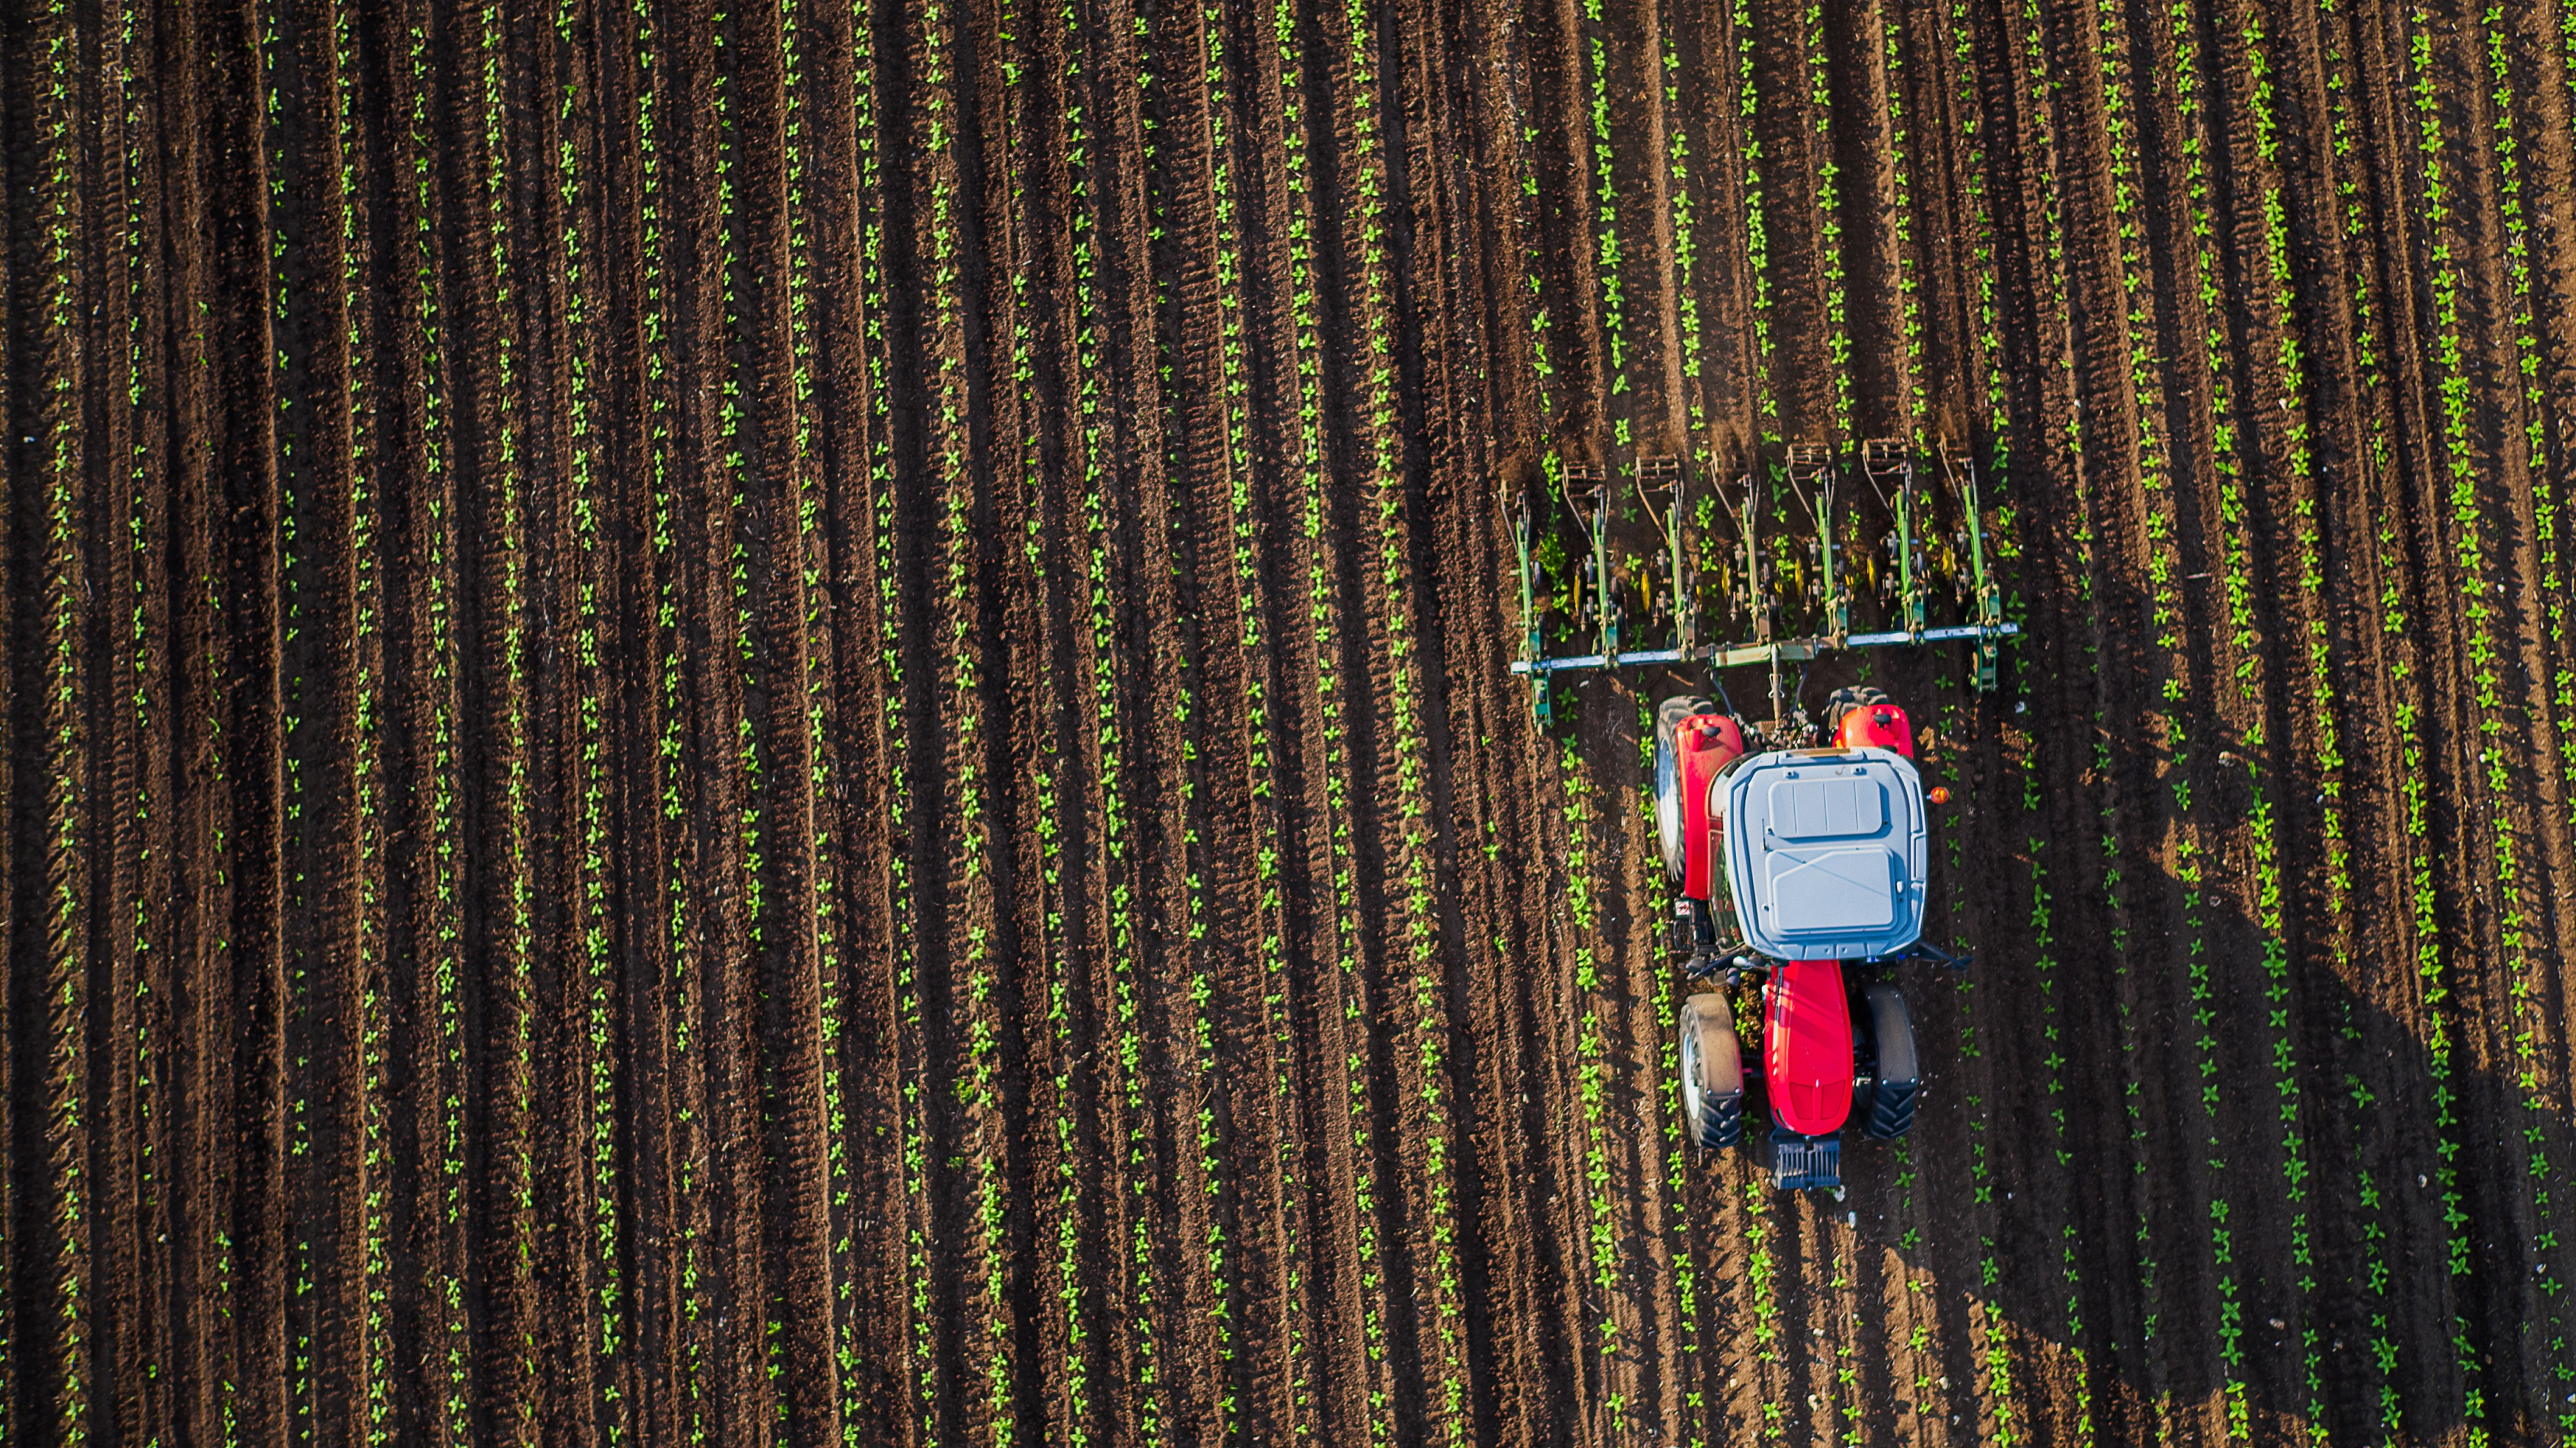 Although agricultural efficiency has increased significantly over the course of the last decades, evidence suggests that crop yields are now plateauing. Novel solutions are urgently needed to meet the world's increasing demand for food. Credit: valio84sl/iStock.com